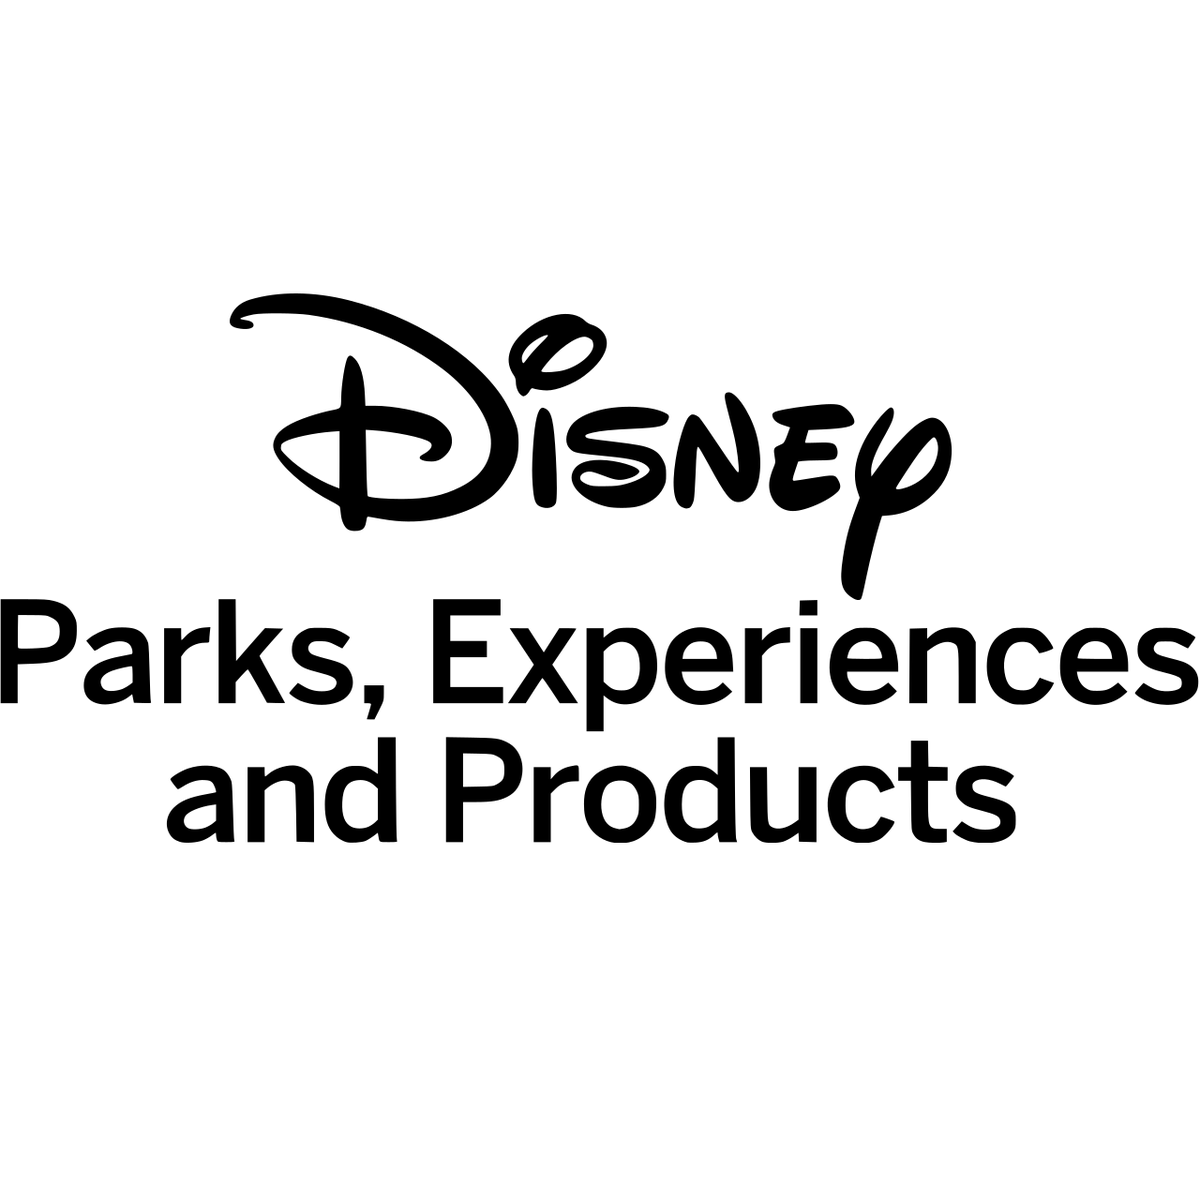 Job Opportunity  Zoological Manager – The Living Seas at The Walt Disney Company - Parks, Experiences and Products; Lake Buena Vista, Florida, United States  #VeterinaryCareers #LoveYourVeterinaryCareer #Disney #LivingSeas #ZoologicalManager